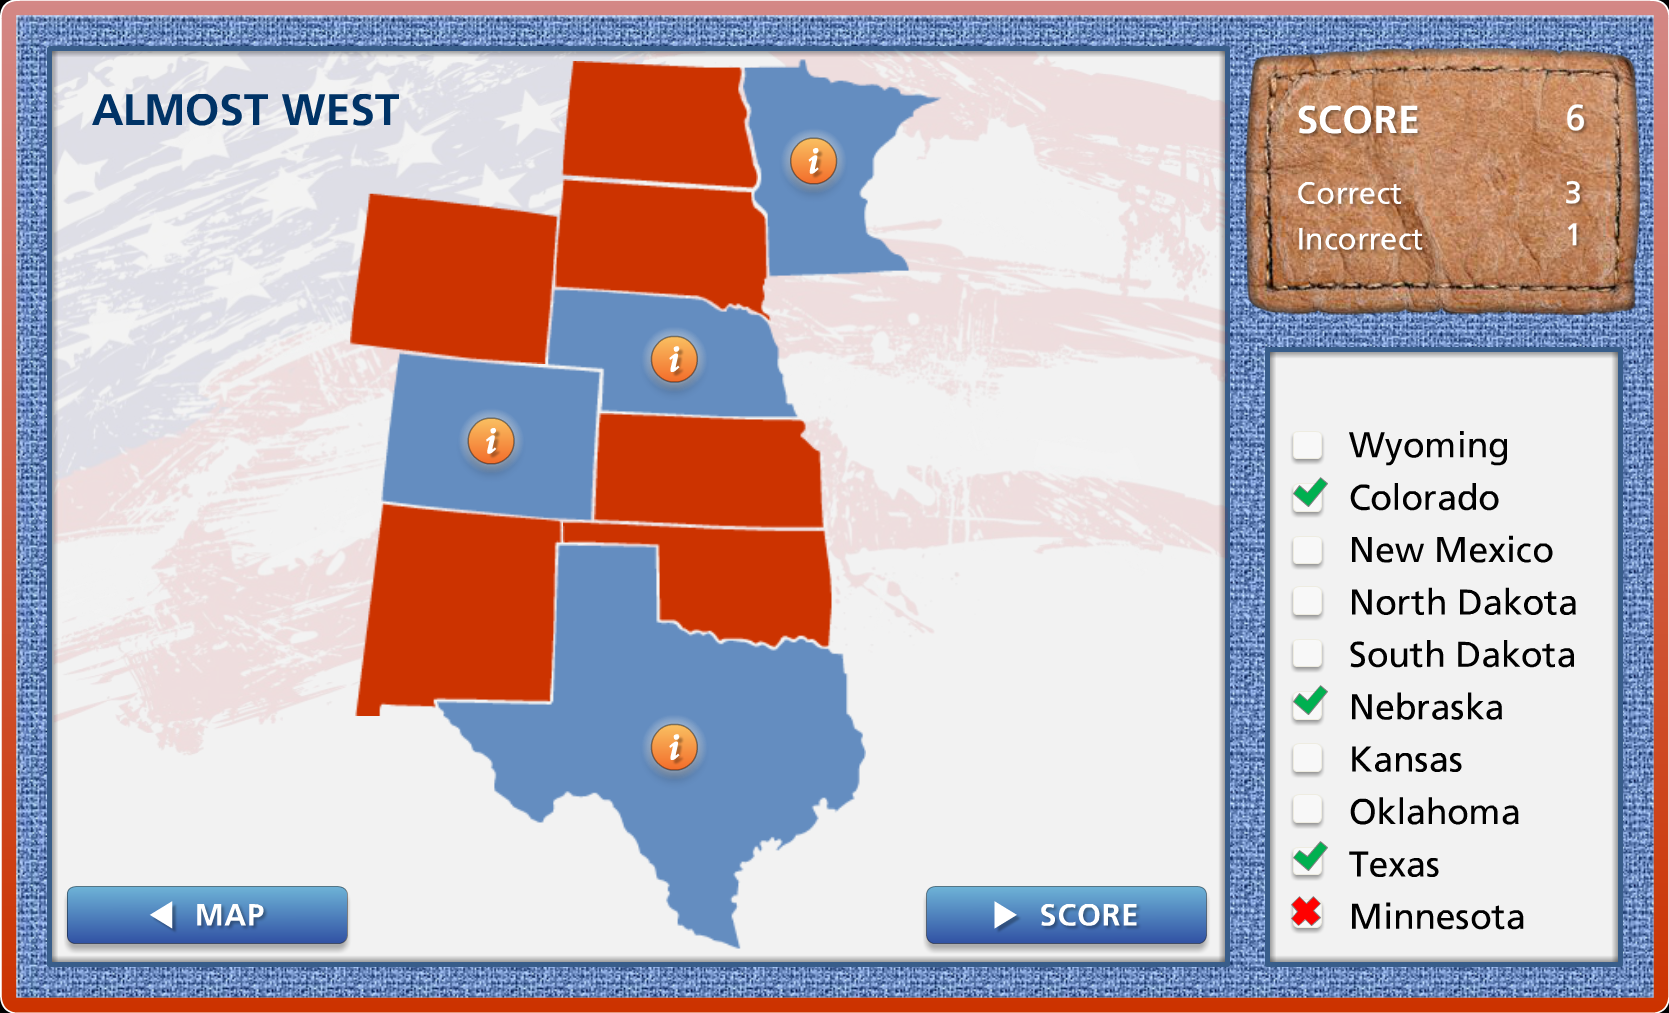 For This Project I Designed A Game Like Quiz To Learn The U S State Capitols That Keeps Track Of Your Score As You Learn All The State Capitols In The